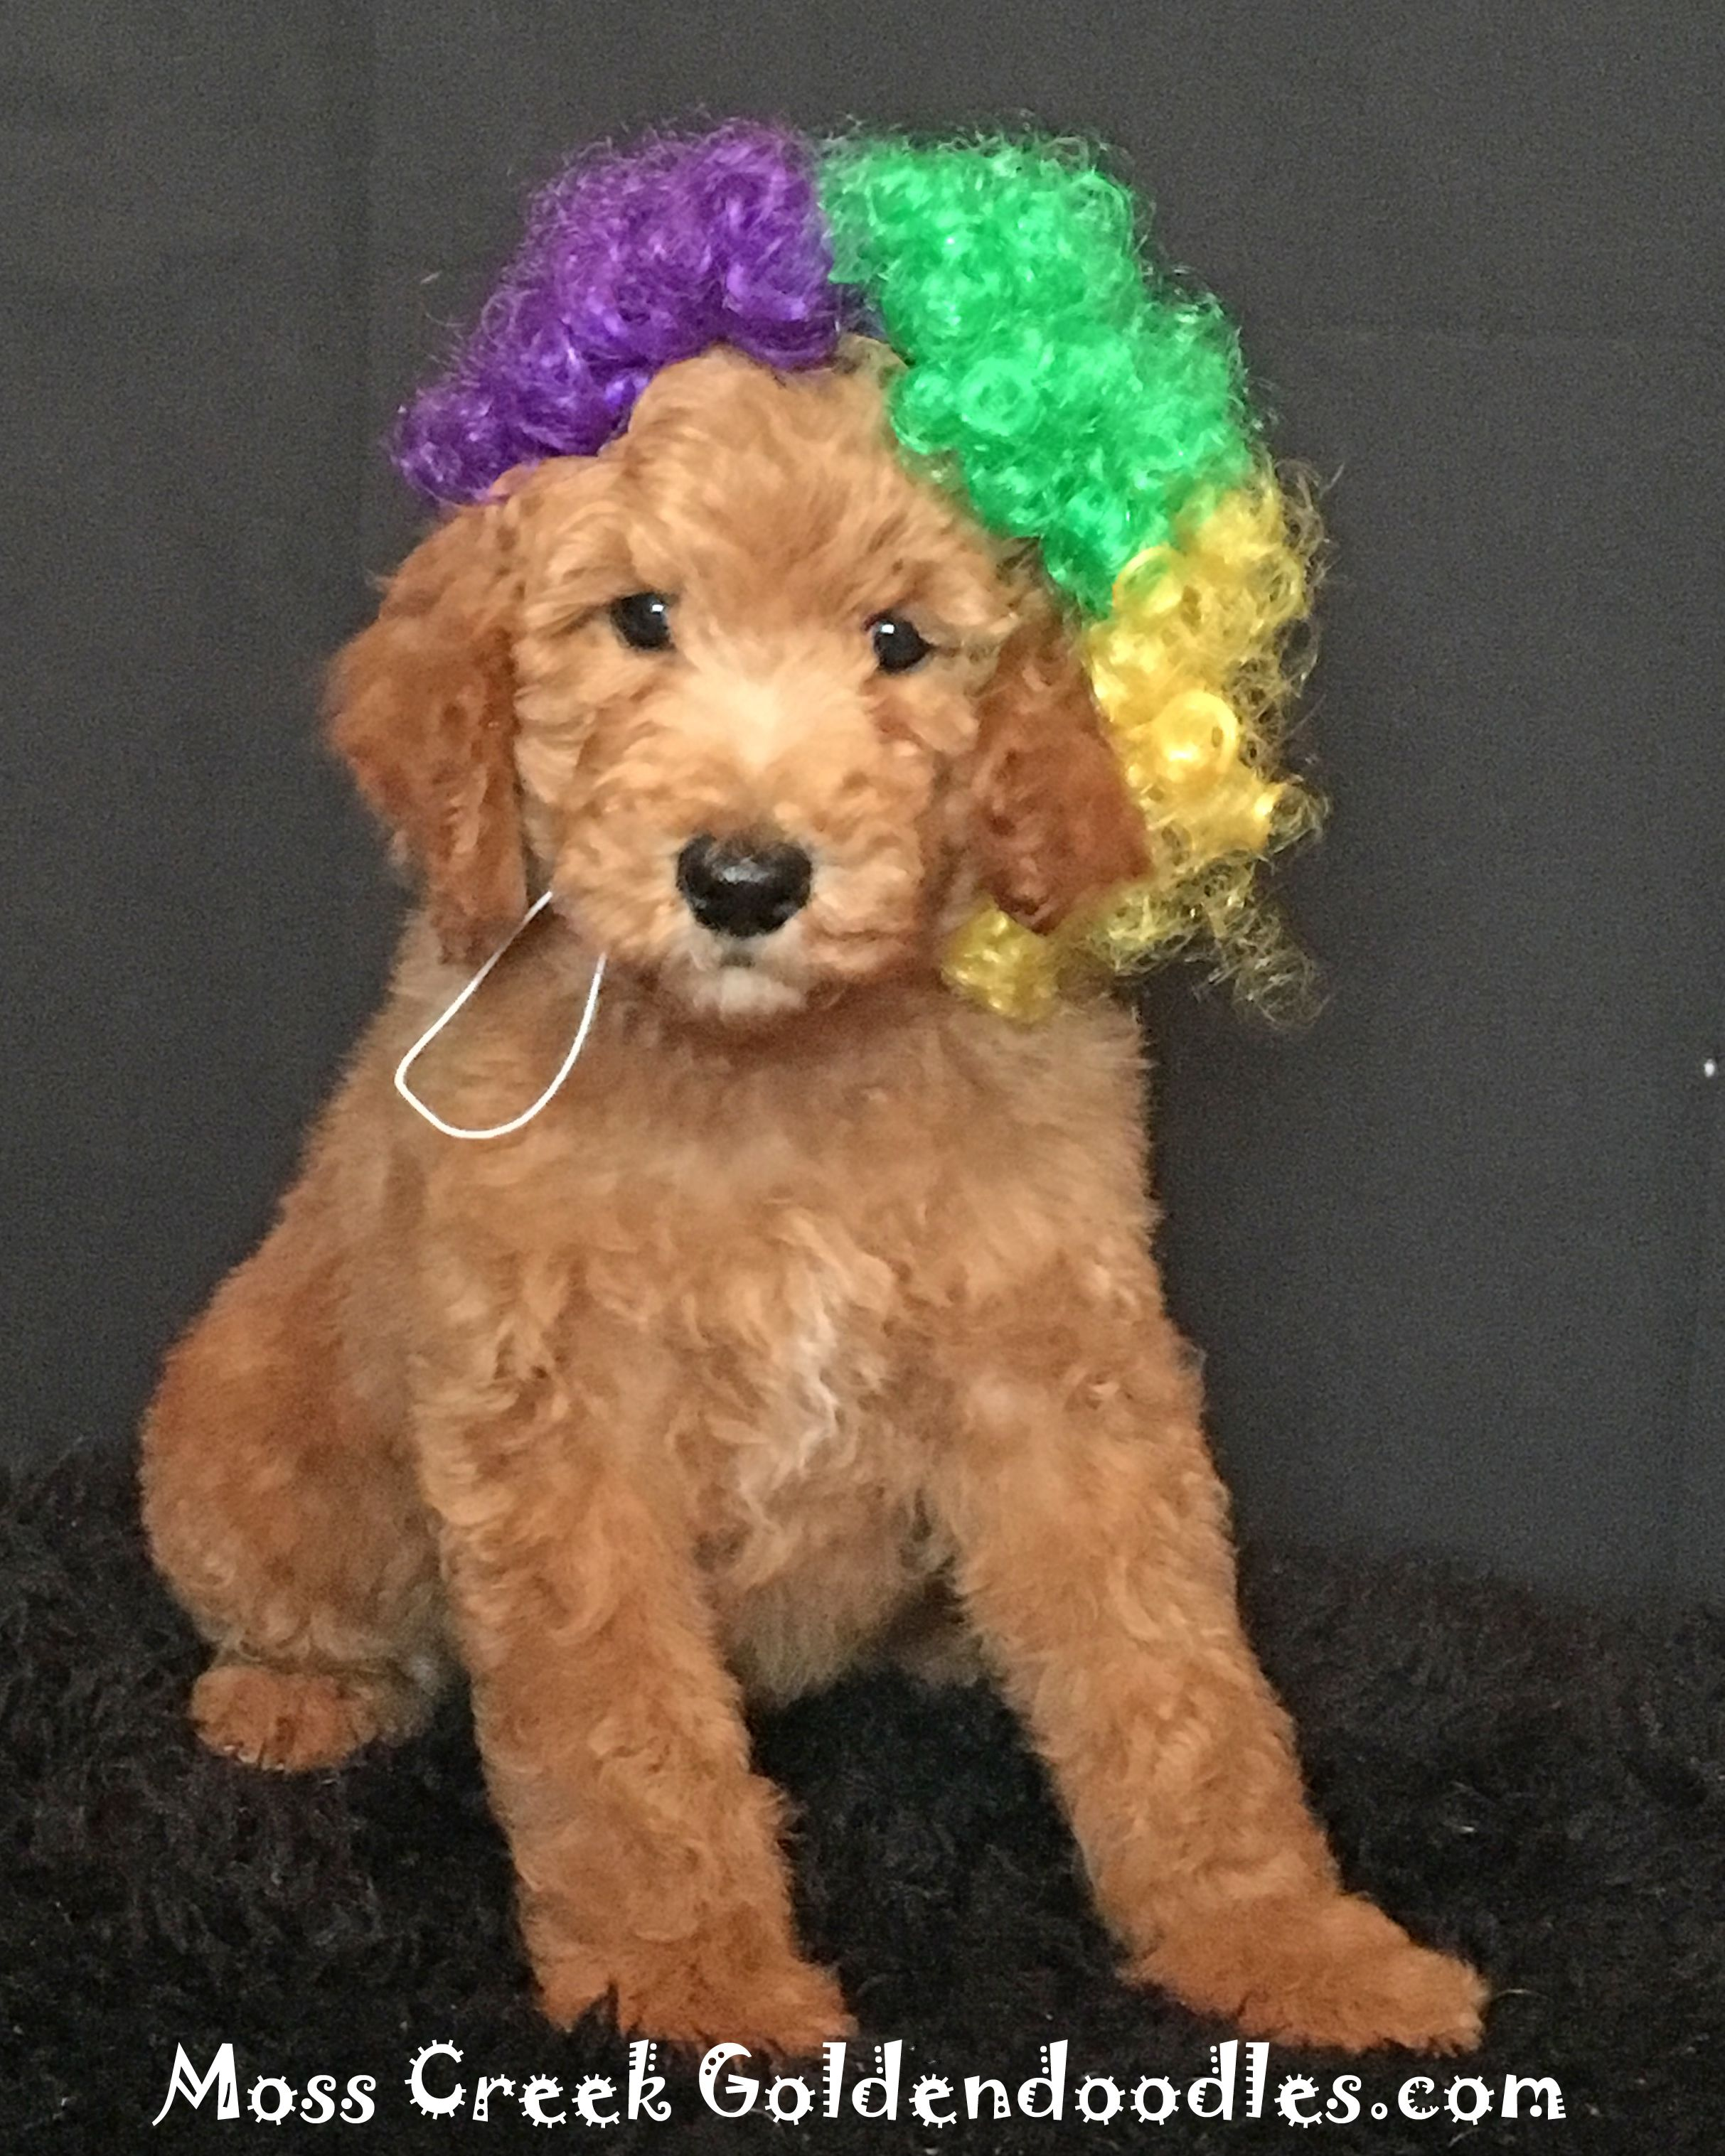 Moss Creek Goldendoodles Goldendoodle Puppy English